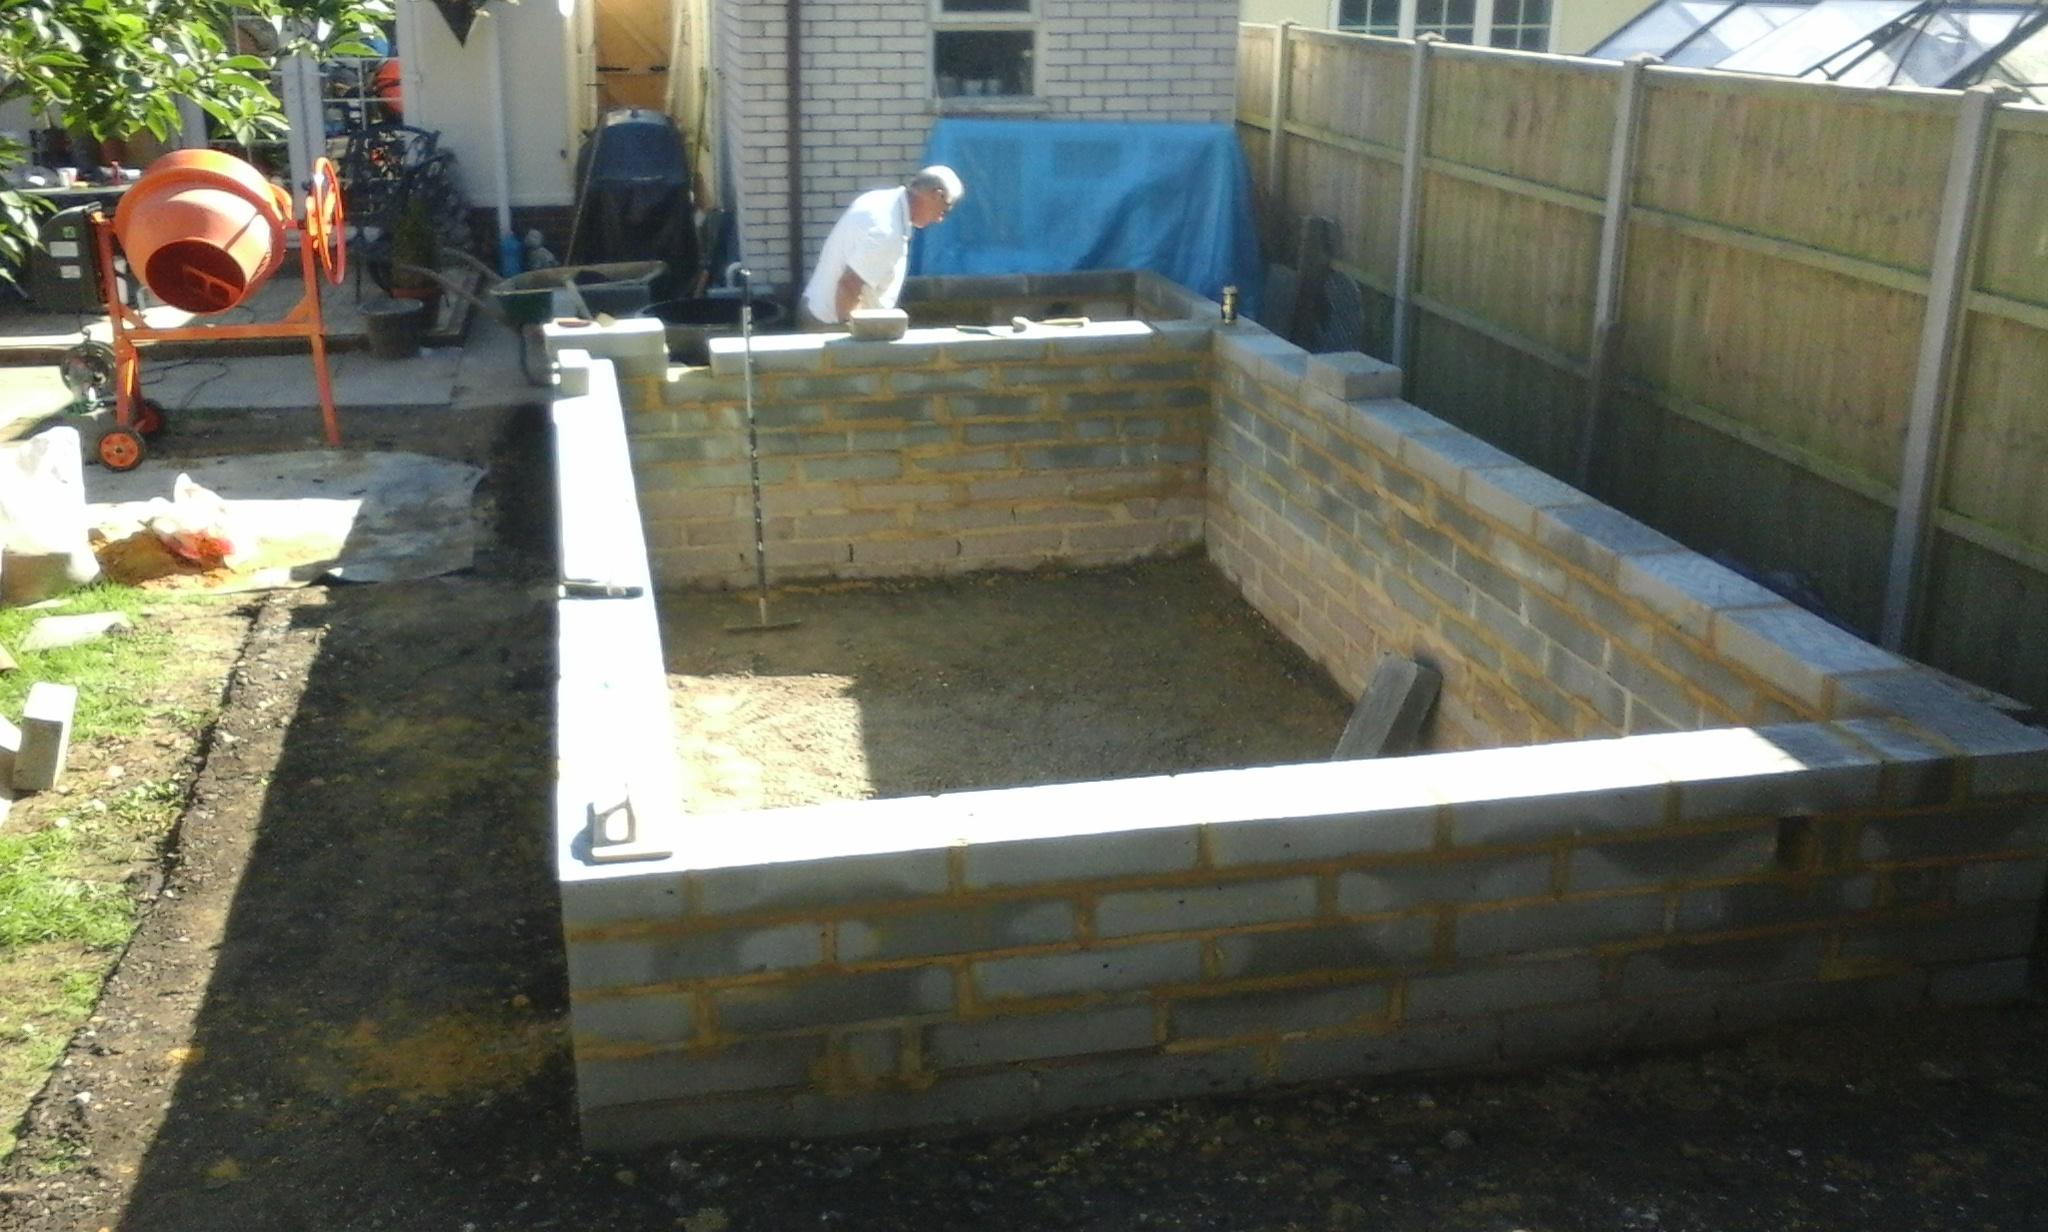 Dorset pond design construction maintenance pond stars uk for Concrete koi pond design